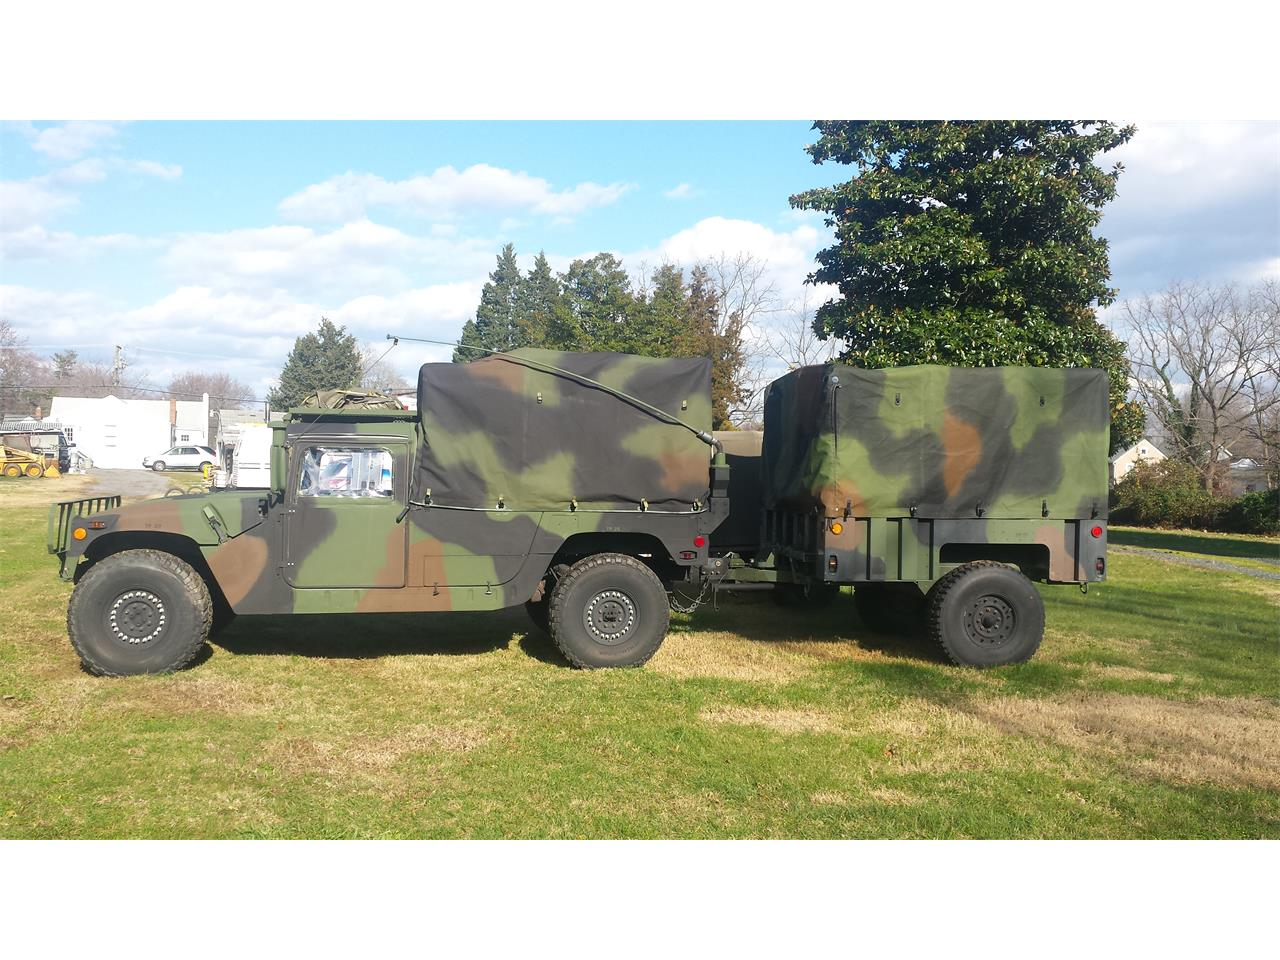 Large Picture of 1993 Hummer H1 located in Maryland - $30,000.00 Offered by a Private Seller - HDBL